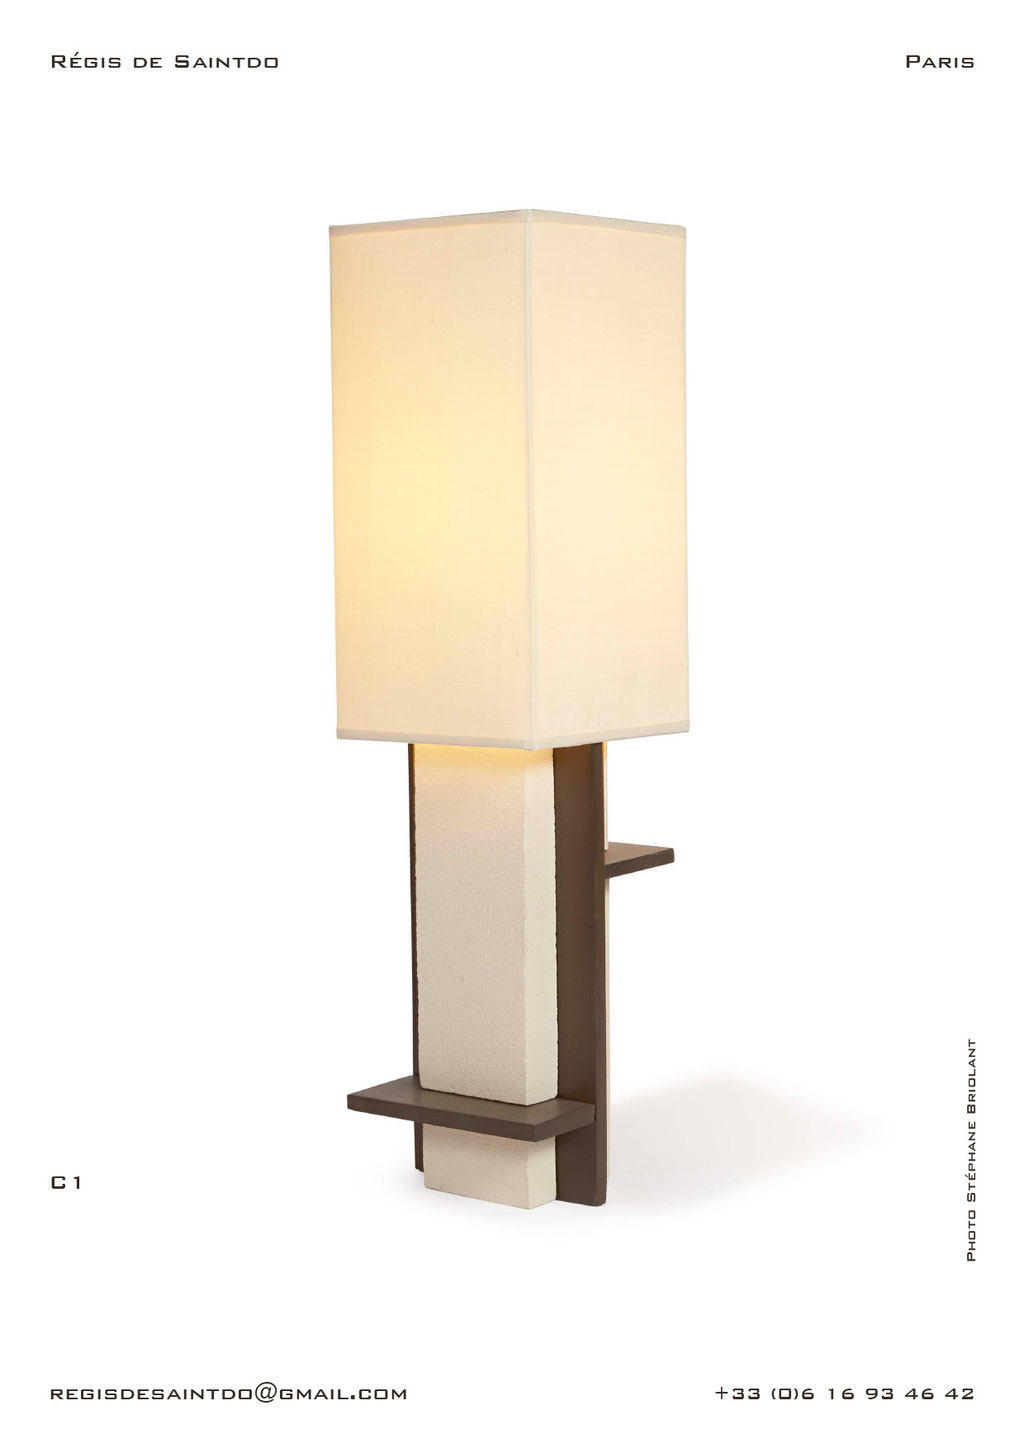 Lamp-C1-white-rough-brown-polished-handmade-unique